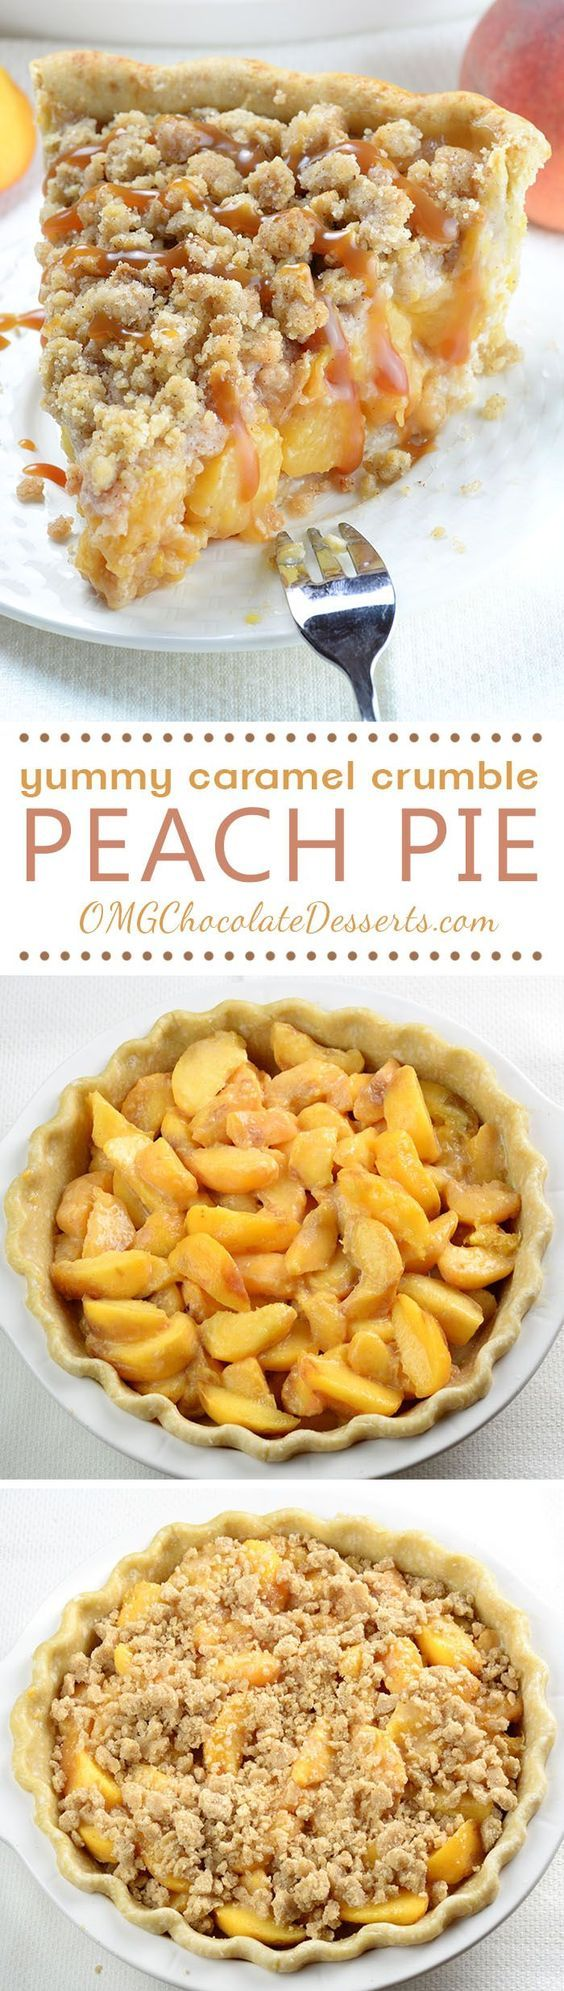 Caramel Crumble Peach Pie - homemade buttery crust packed with sweet juicy peaches and salted caramel sauce topped with brown sugar cinnamon crumbs. Super easy crowd-pleaser summer dessert.